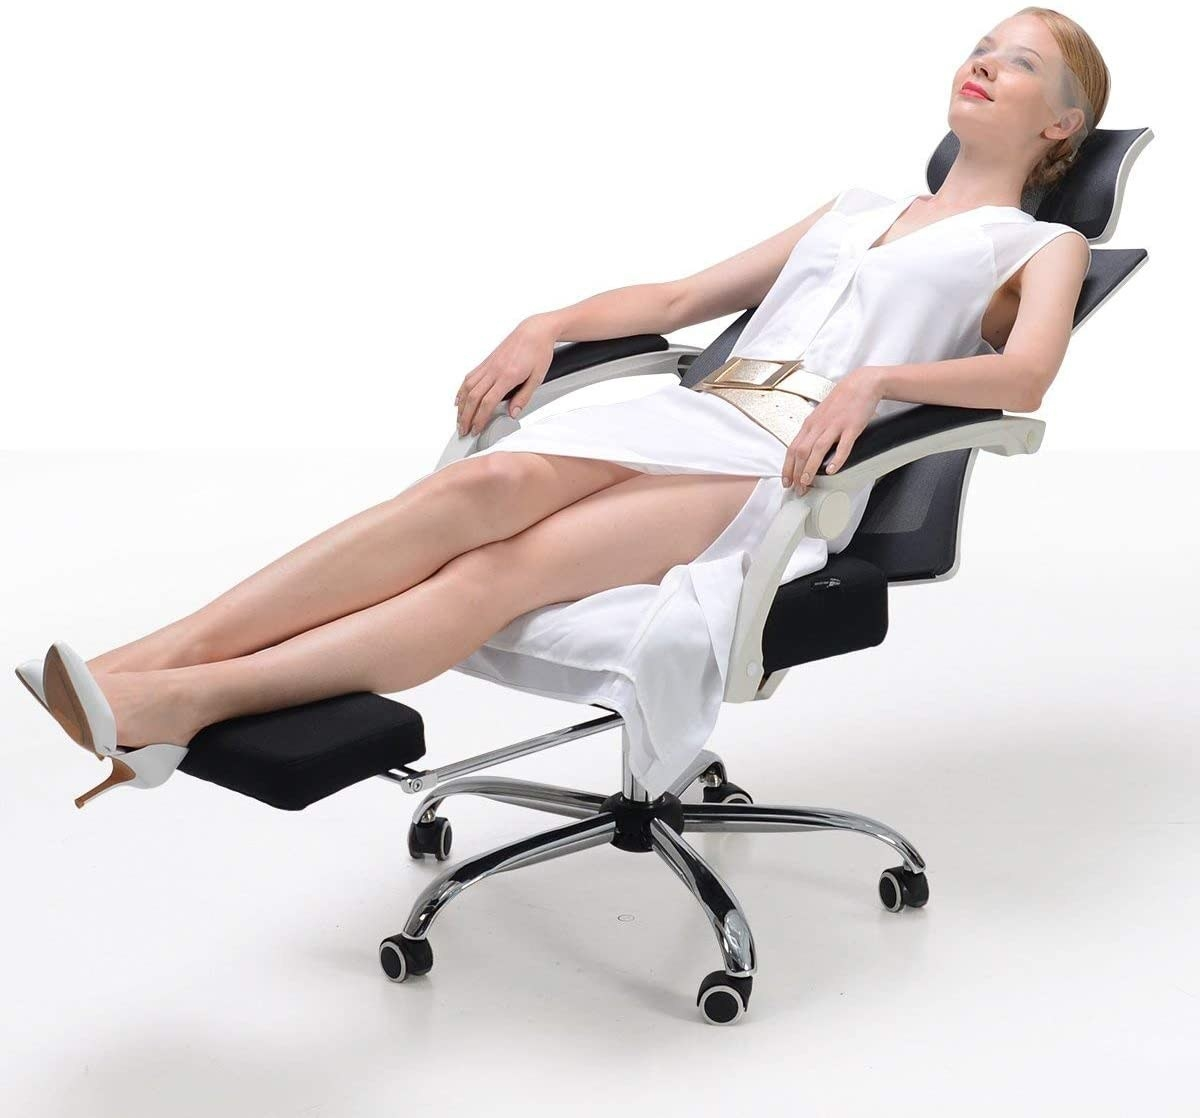 A model sleeping in reclining desk chair that also has a place to prop feet up